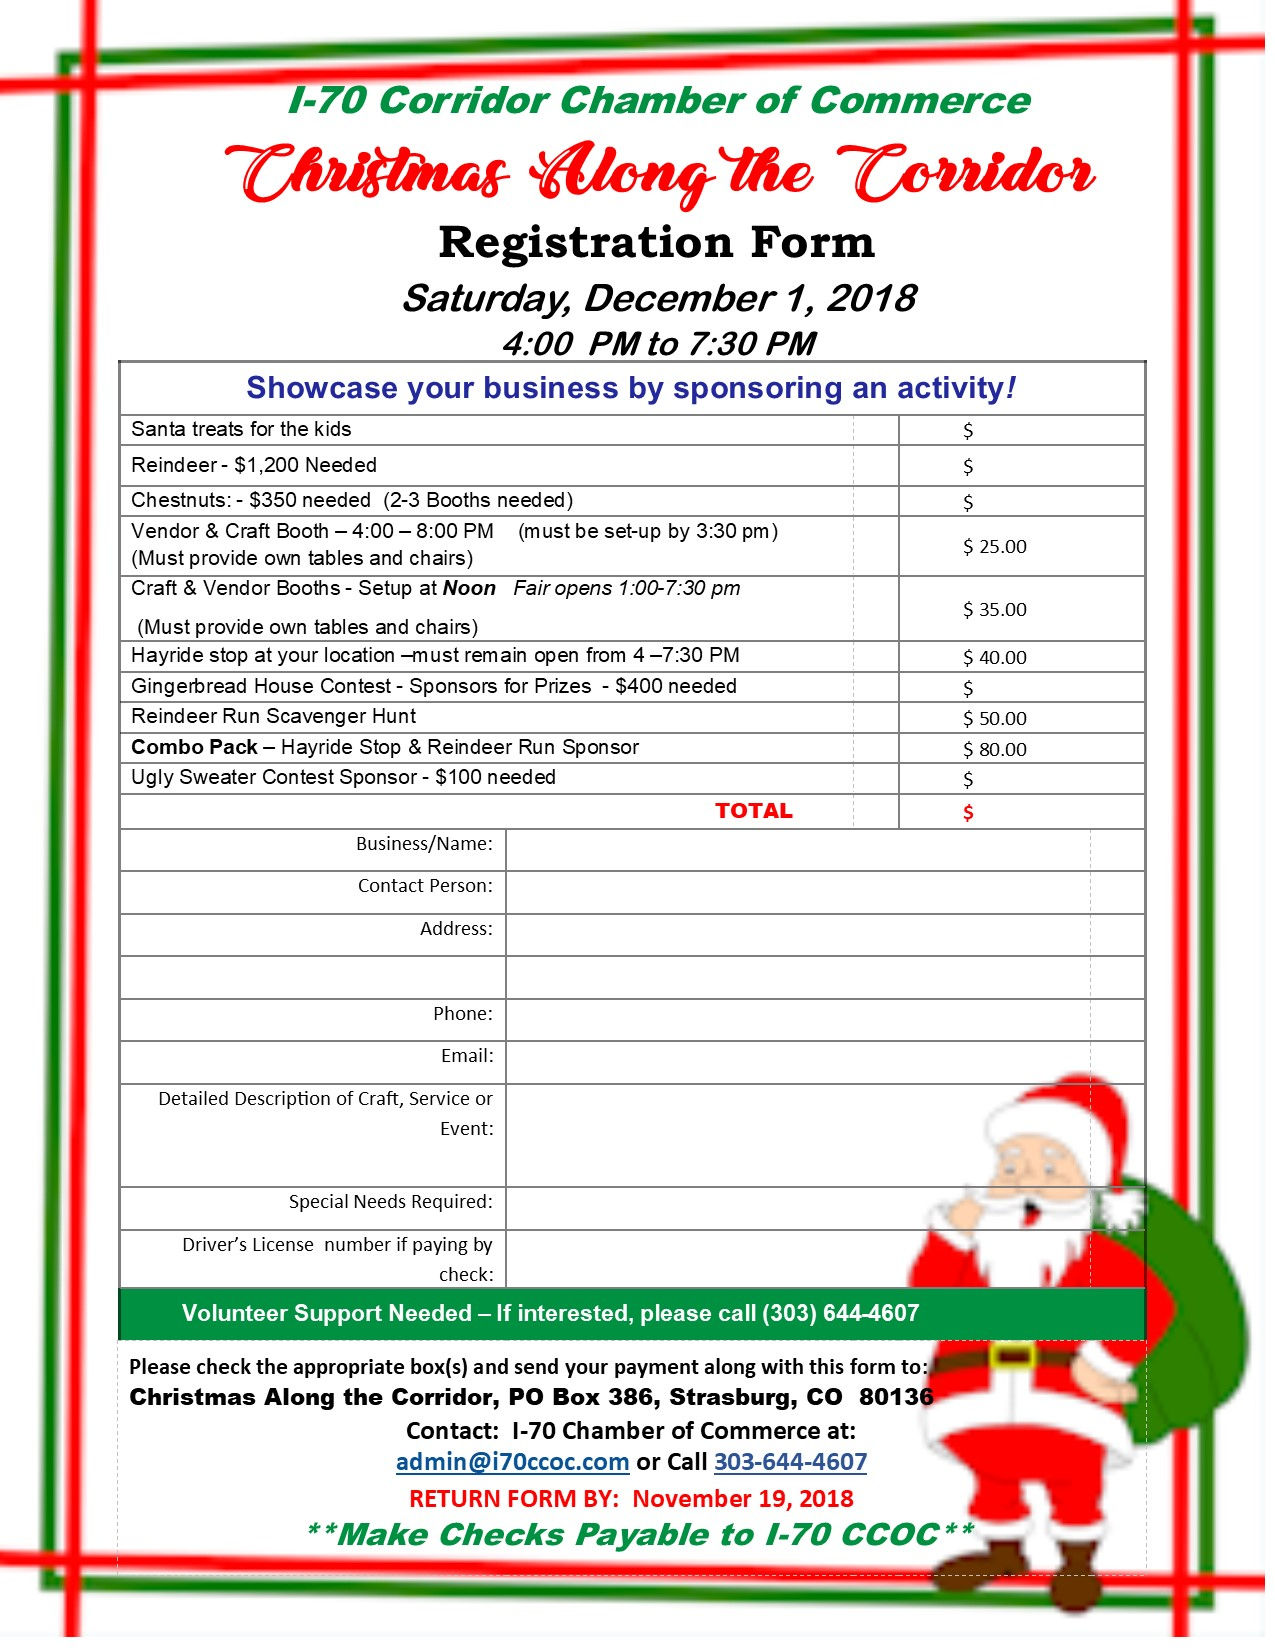 Registration-Form-2018.jpg